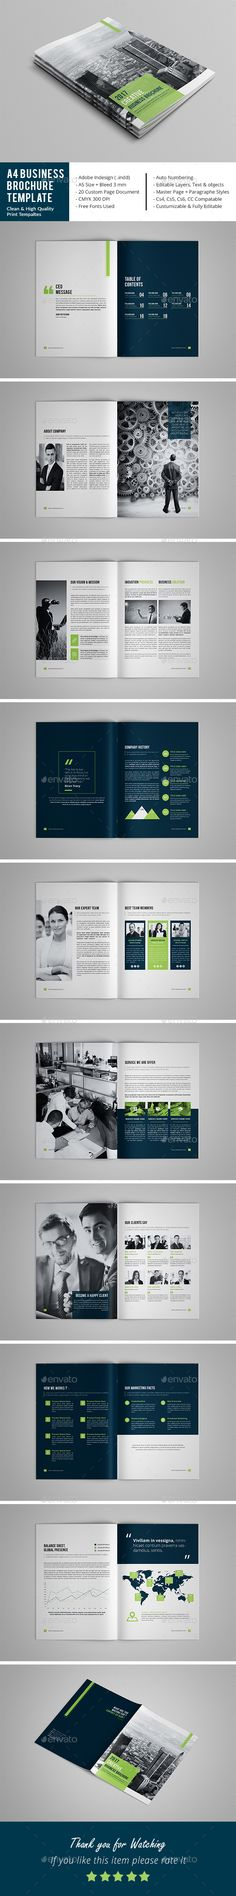 Business Brochure Template by adobemouad Business Brochure Template This InDesign Brochure is Clean & Porfessional. Create your company鈥檚 documentation quick and easy. Design Brochure, Booklet Design, Brochure Layout, Corporate Brochure, Business Brochure, Corporate Design, Brochure Template, Business Folder, Company Brochure